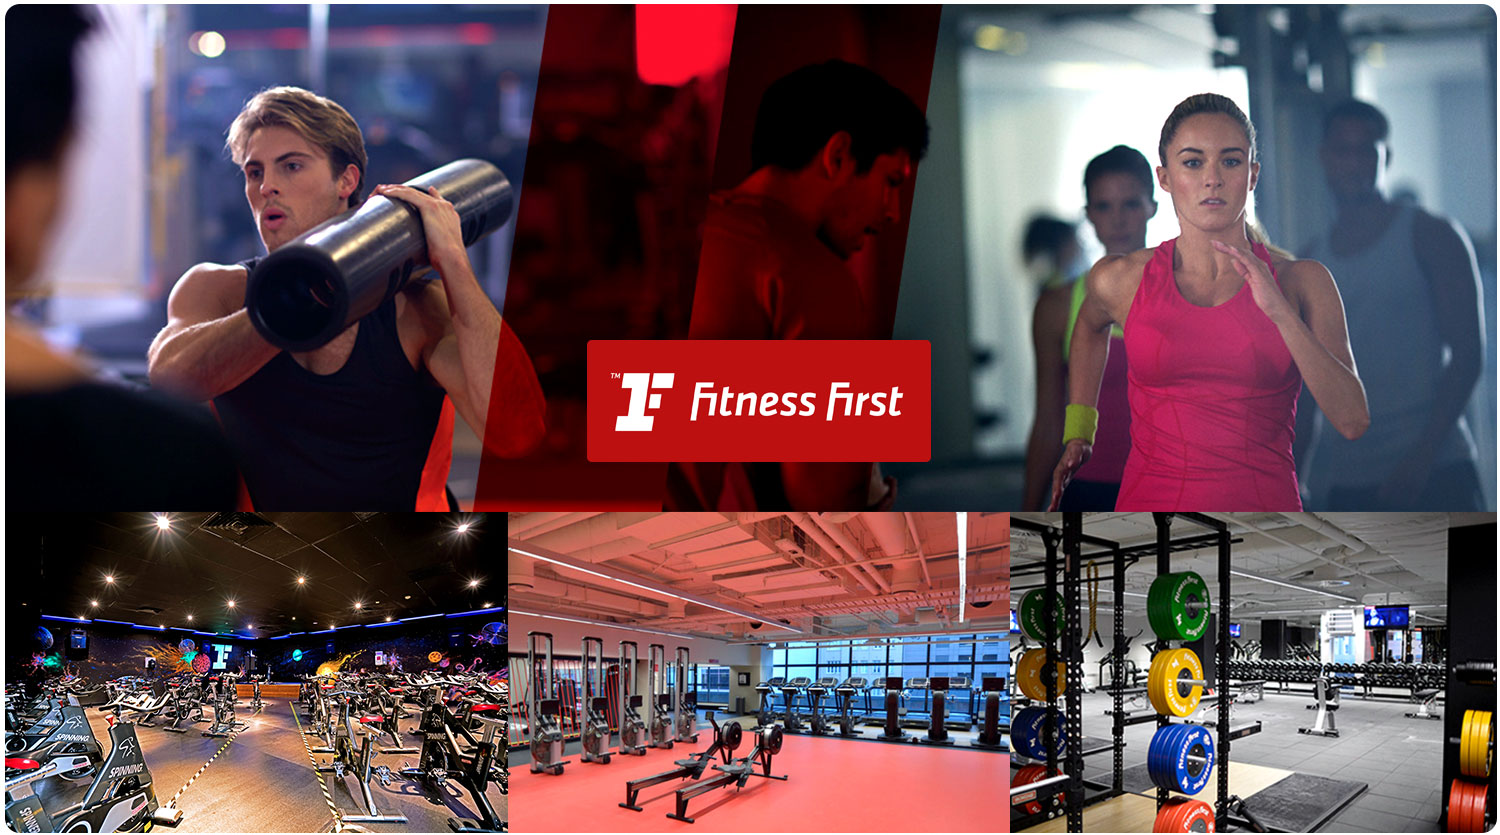 Start your Fitness Journey with Fitness First with only $14.95 for 14 days at Fitness First Lutwyche QLD. Experience our first class gym and freestyle classes inc. Pilates, Yoga, HIIT, Boxing, Les Mills and more. Take the first step with Fitness First Lutwyche QLD.